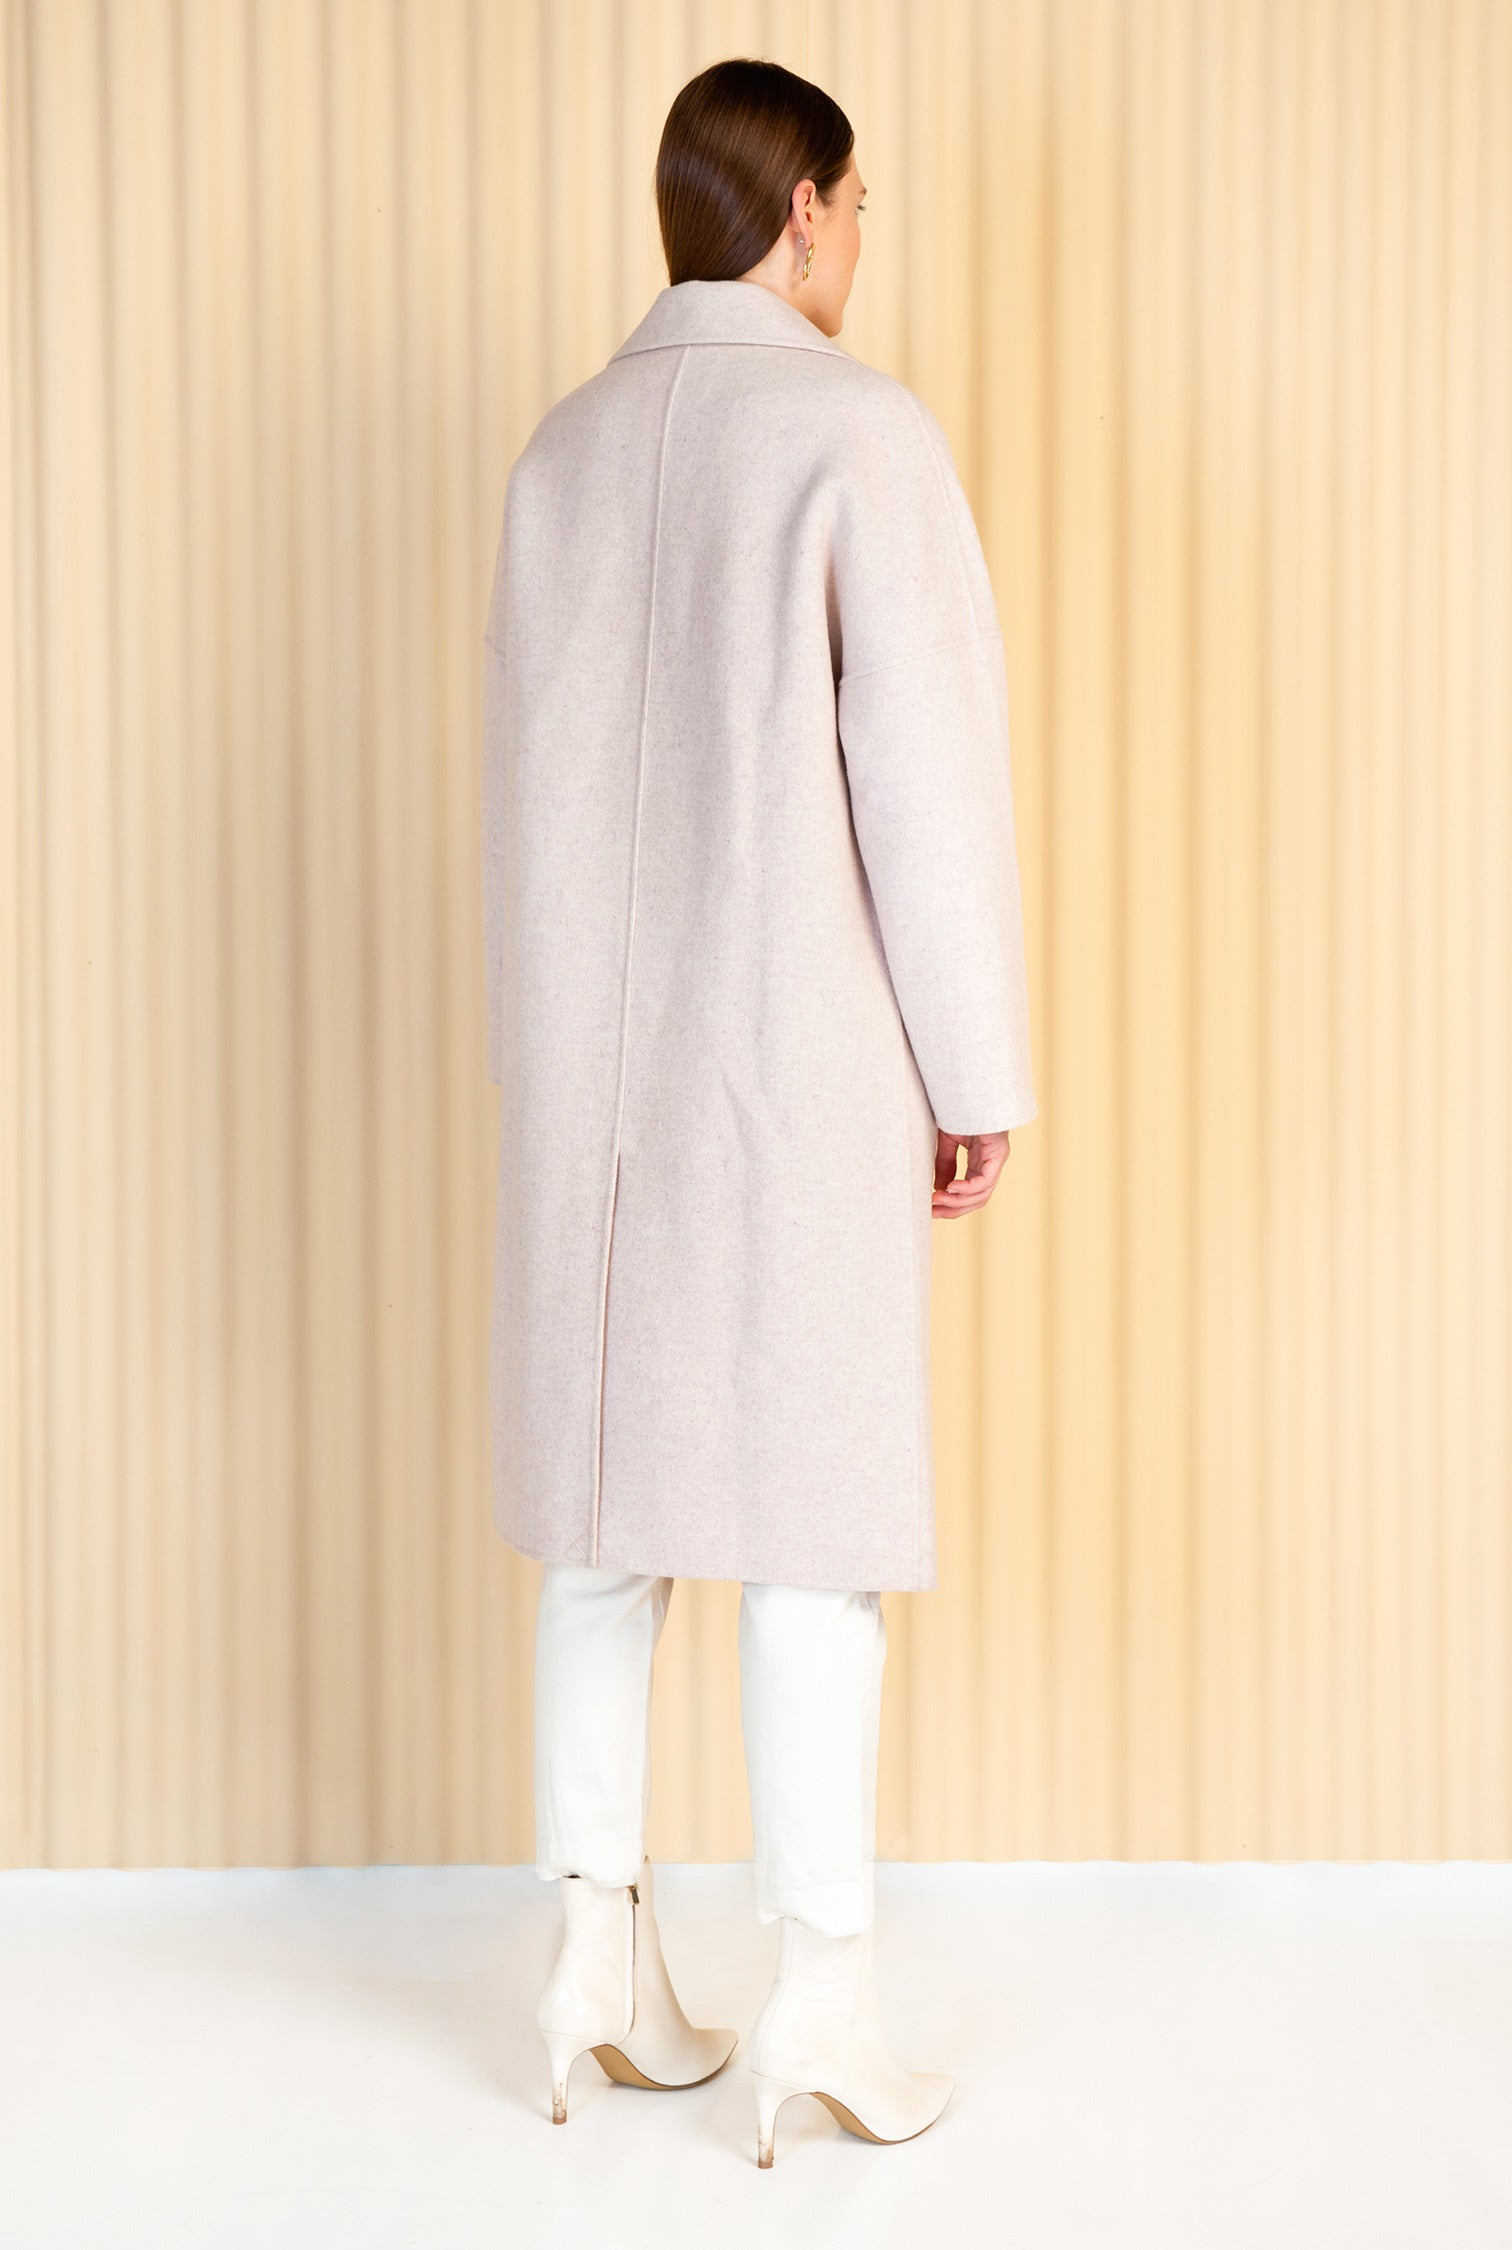 Magali Pascal | Oman Coat - Light Beige